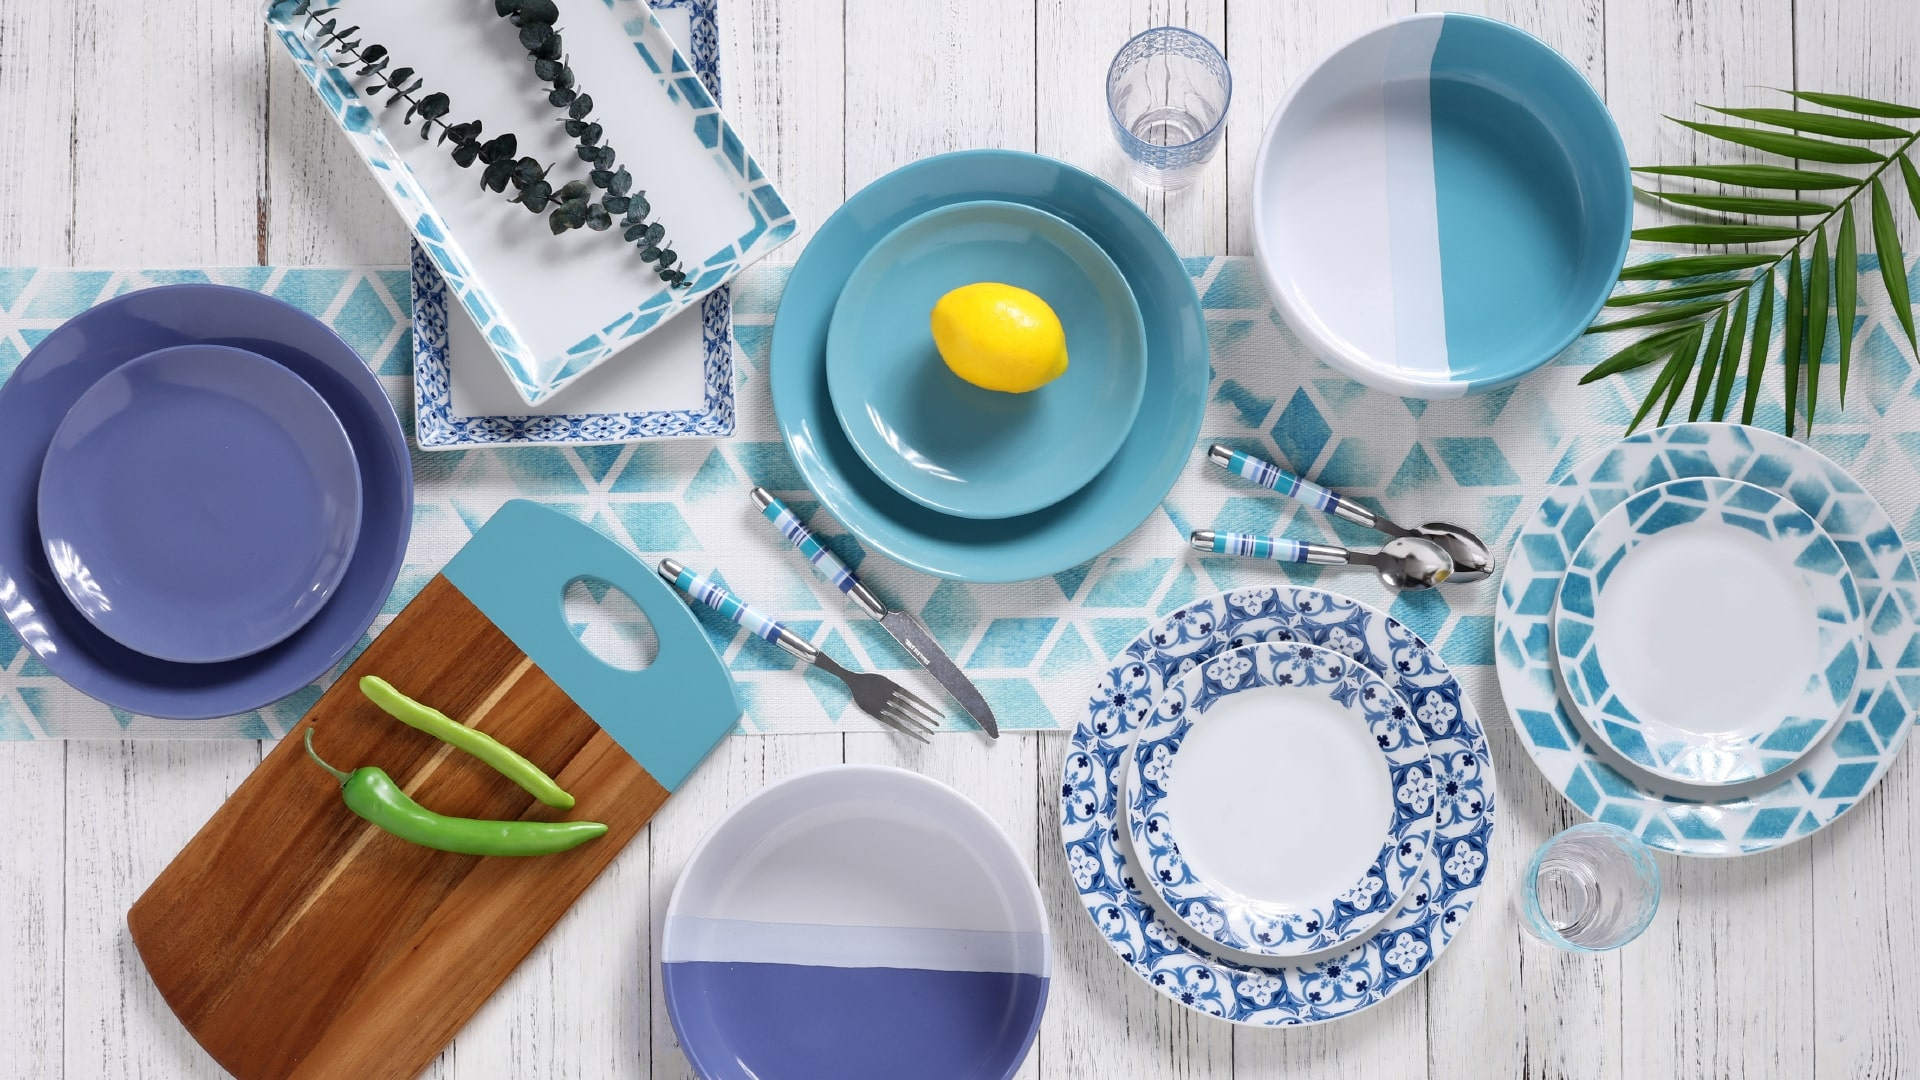 Accessorise Your Dinnerware & Table Linen